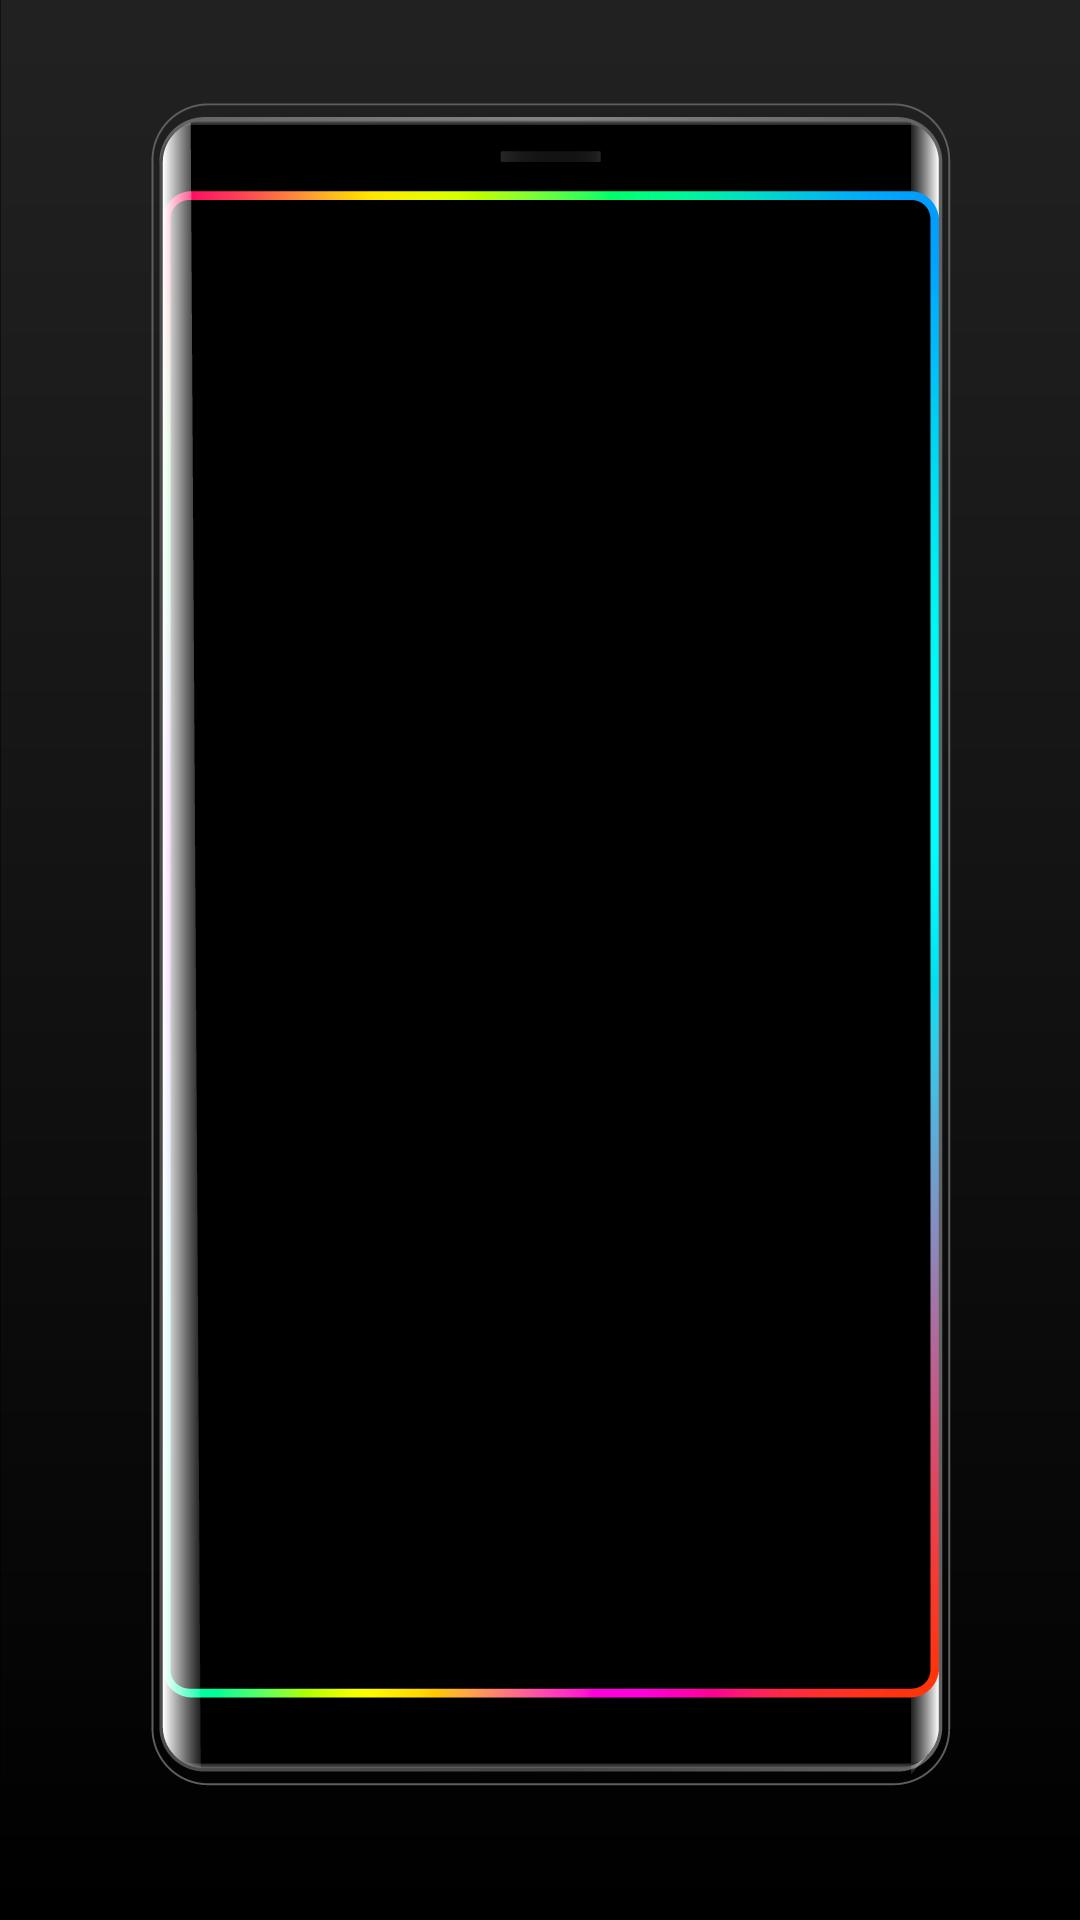 Edge Lighting Colors Round Colors Galaxy For Android Apk Download